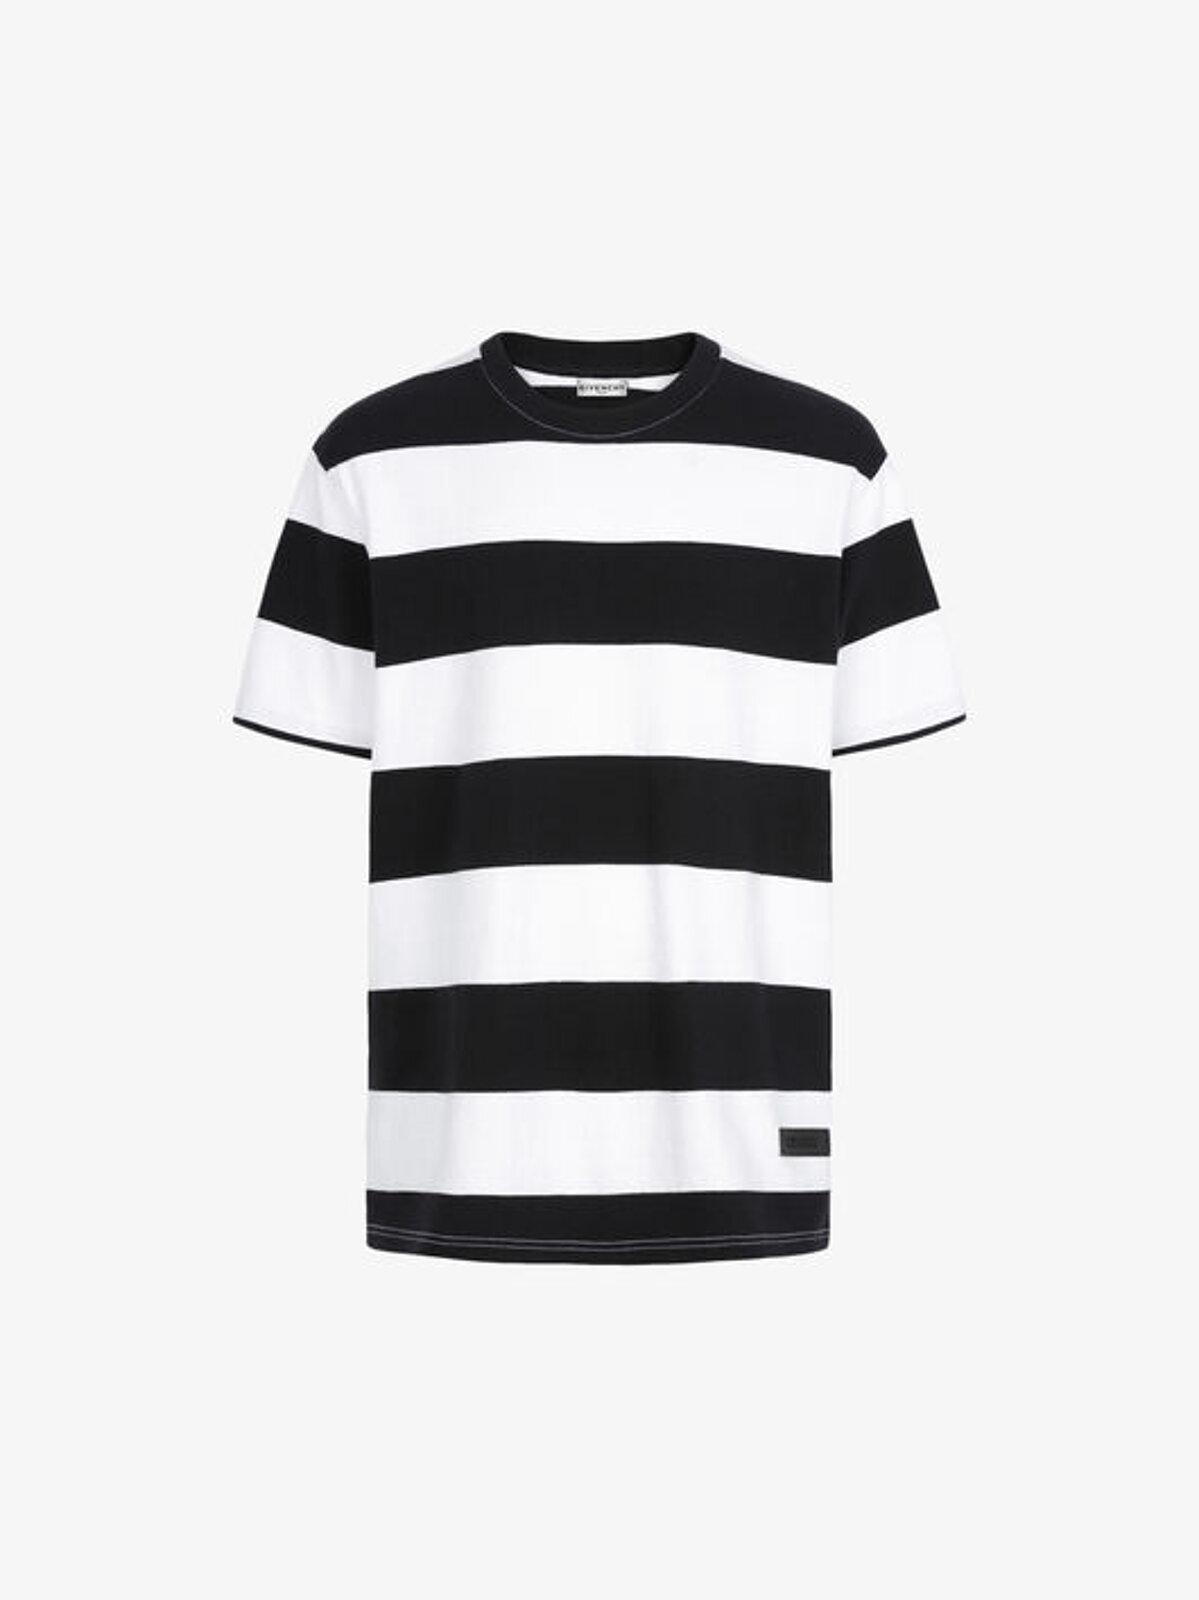 GIVENCHY striped T-shirt - Givenchy